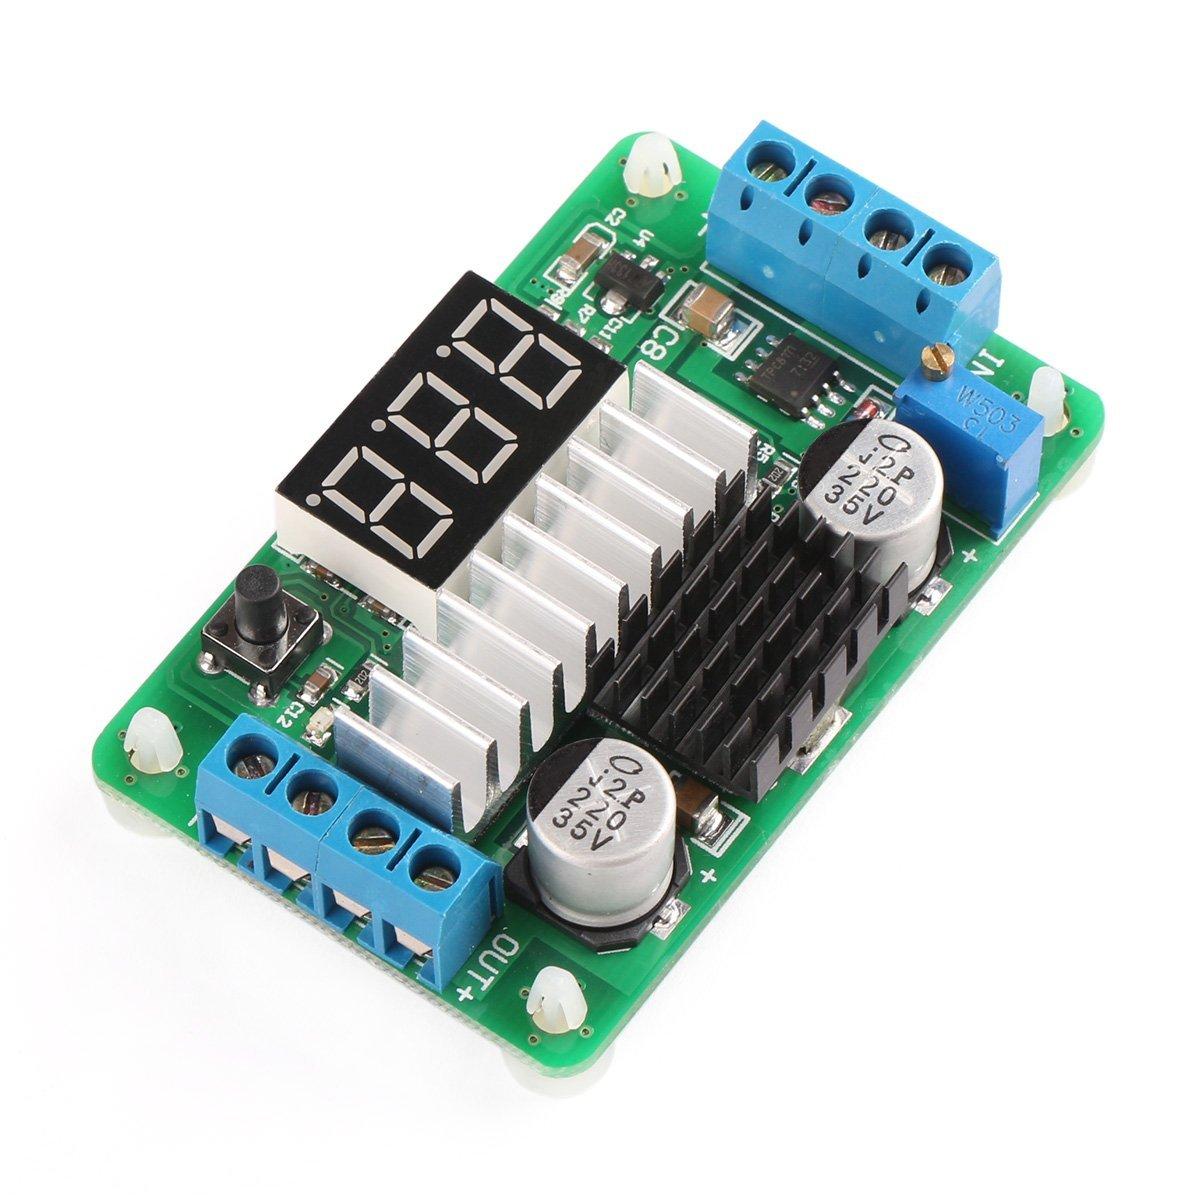 3.5V-30V DC Boost Converter Power Transformer Voltage 5V/12V Step Up Volt Module Power Supply Board for Car Auto Motorcycle